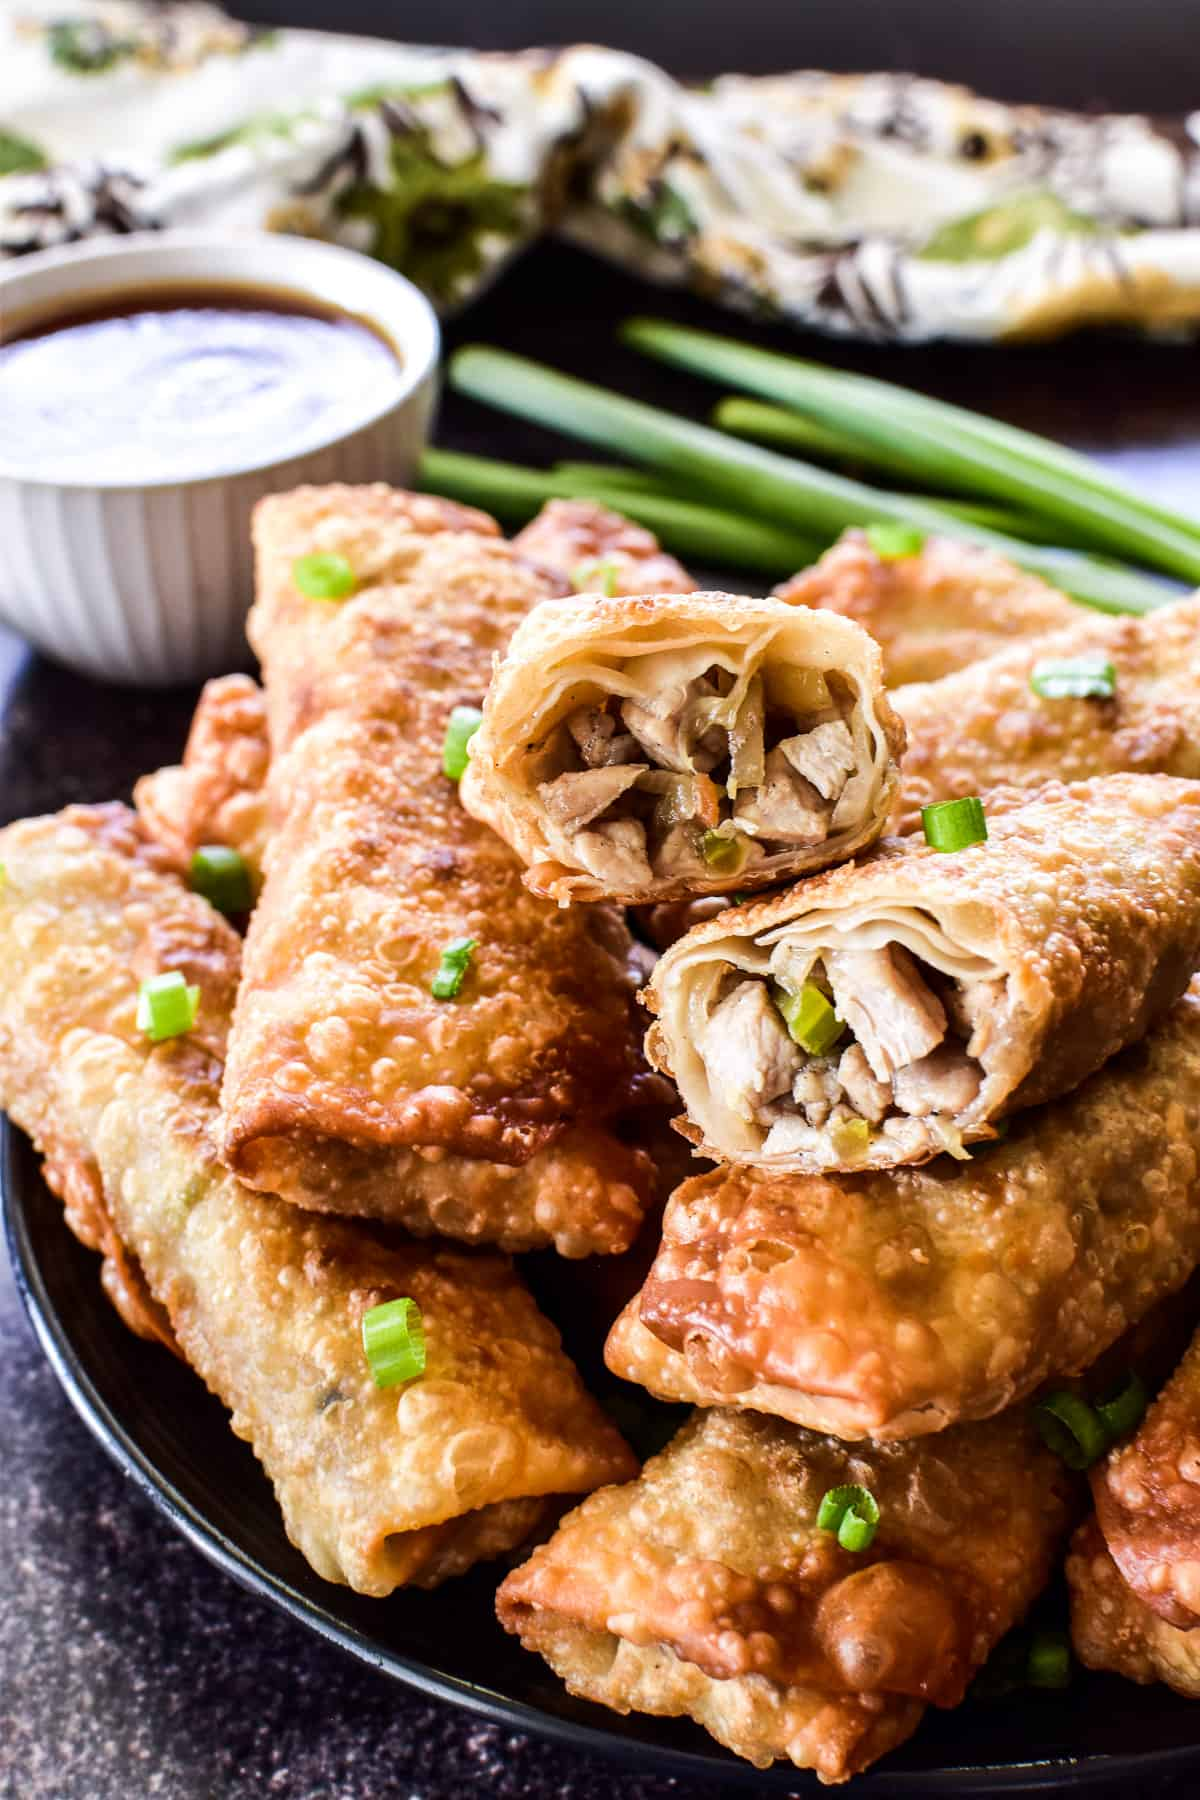 Photo of the inside of a homemade egg roll